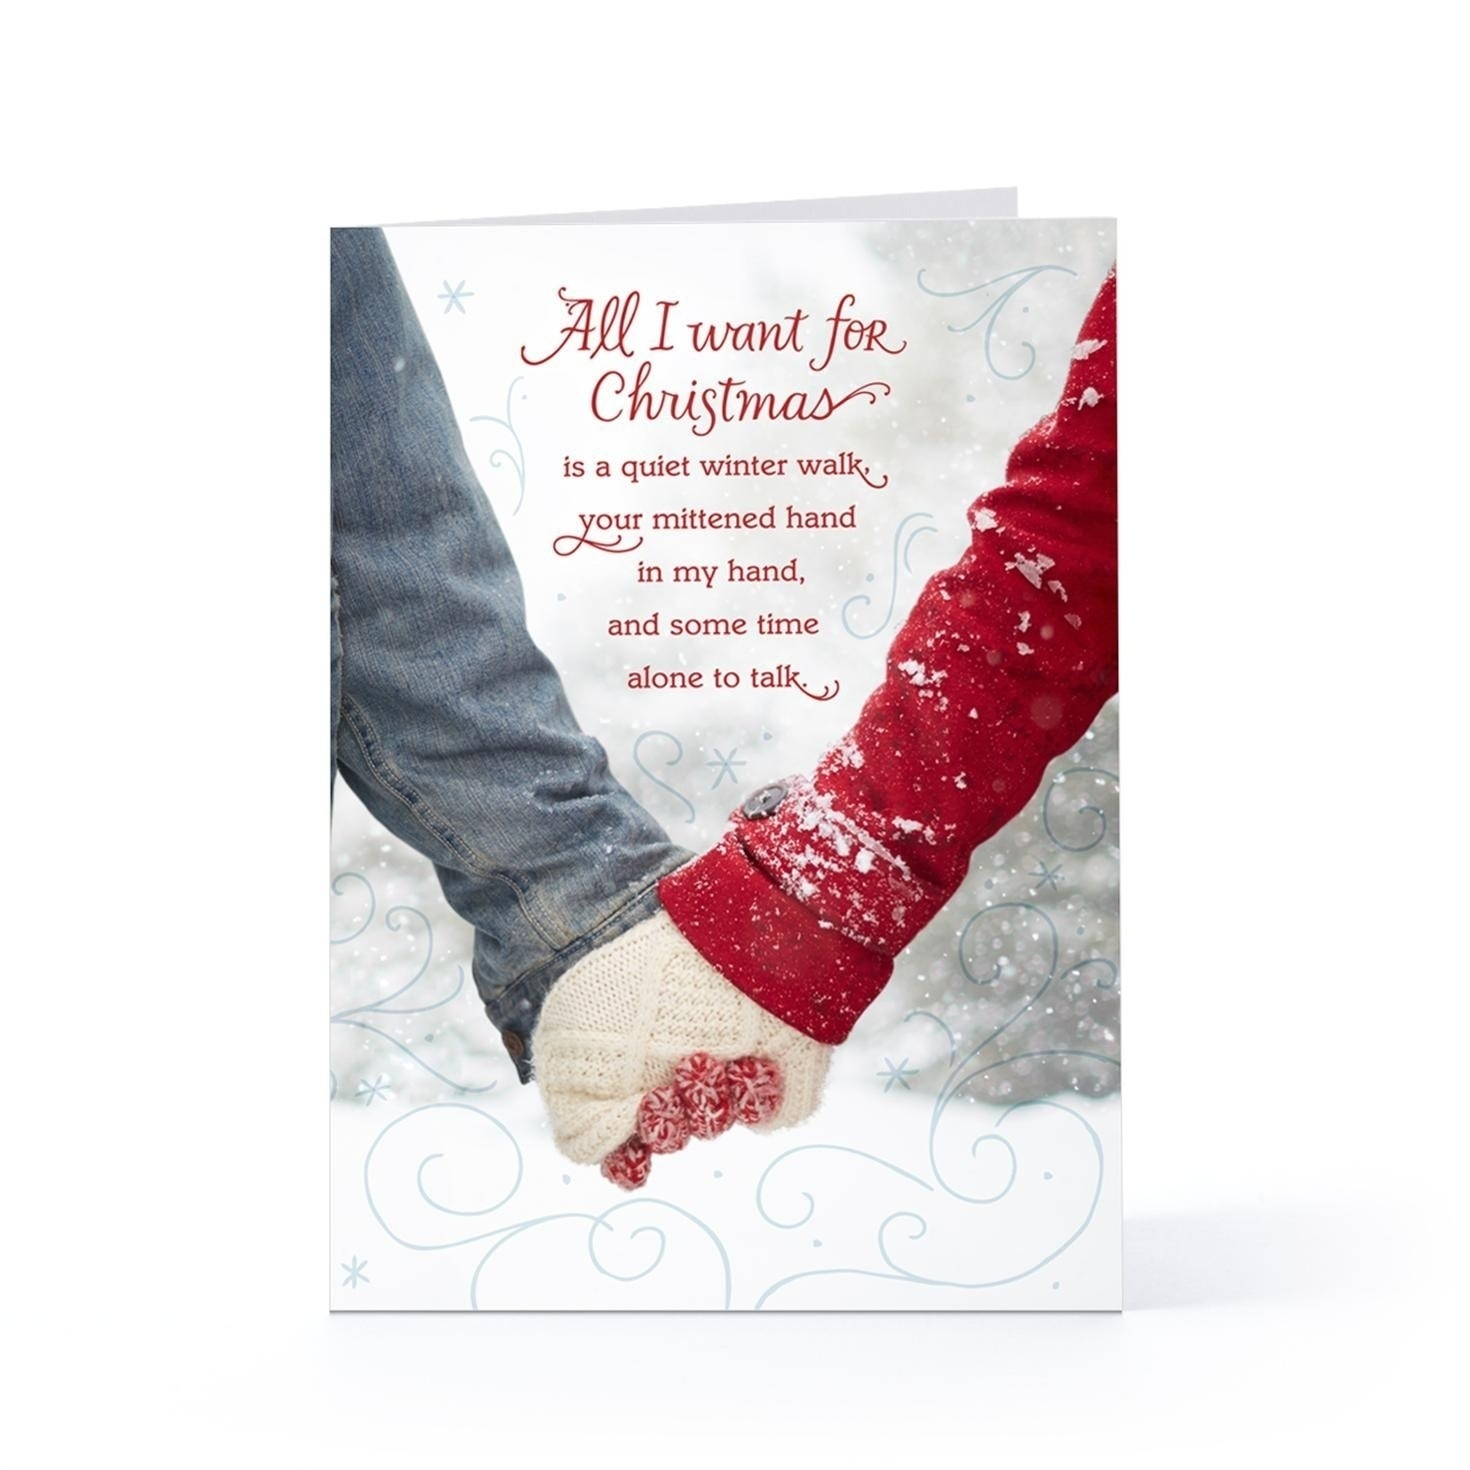 Hallmark Love Cards For Him | World Of Example pertaining to Hallmark Love Cards For Him 28202